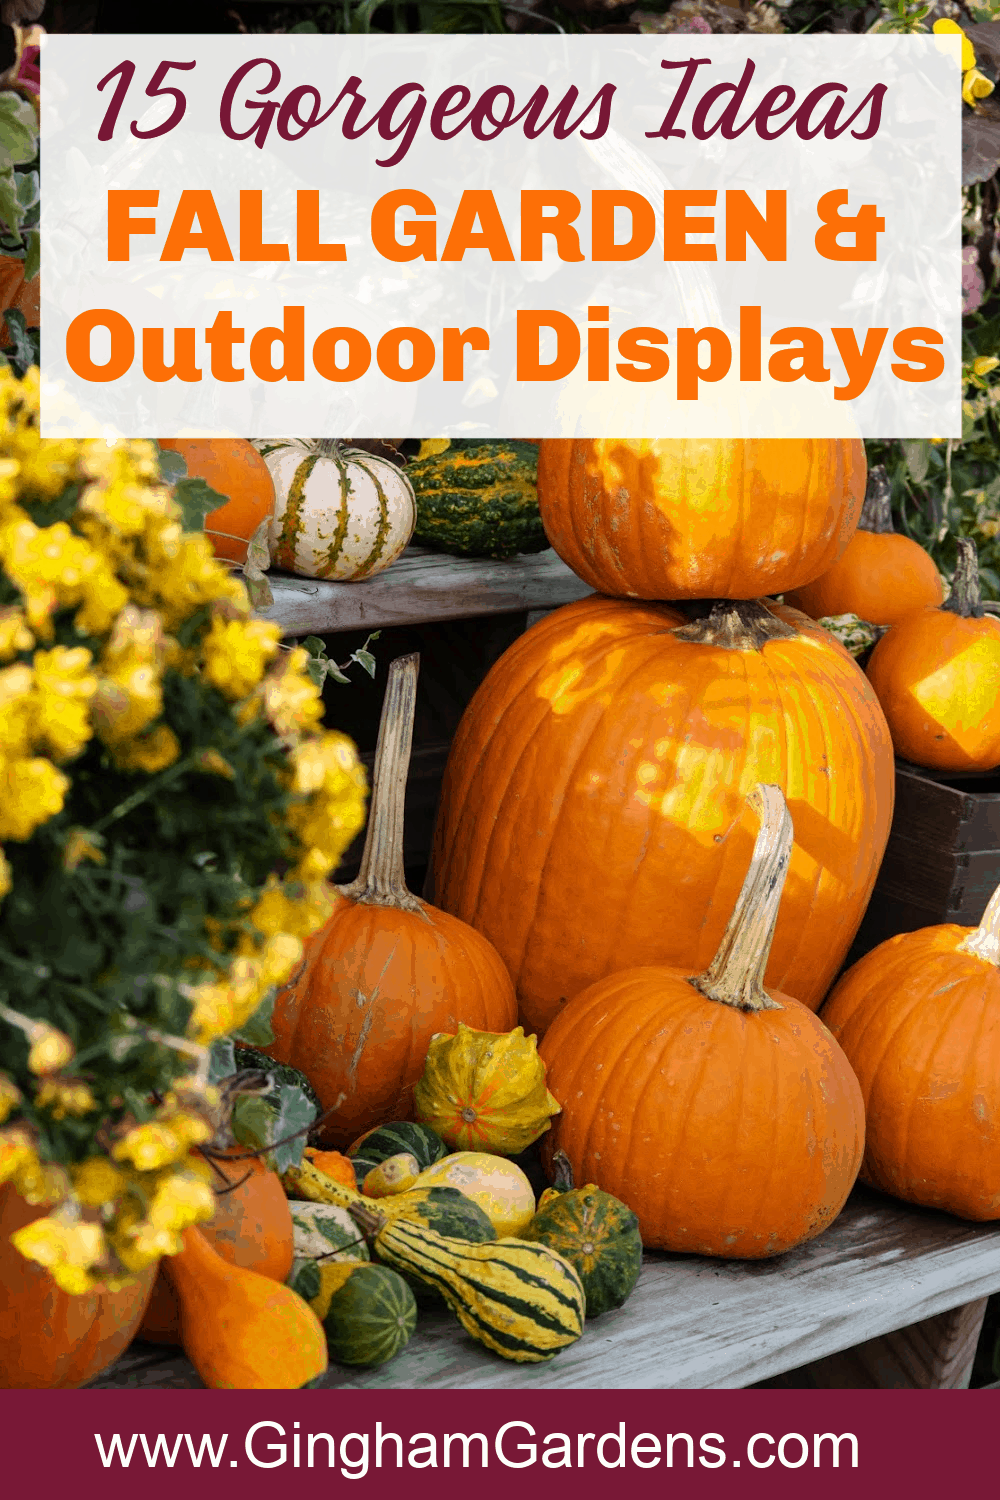 Image of pumpkins and fall flowers with text overlay - 15 Gorgeous Ideas Fall Garden and Outdoor Displays